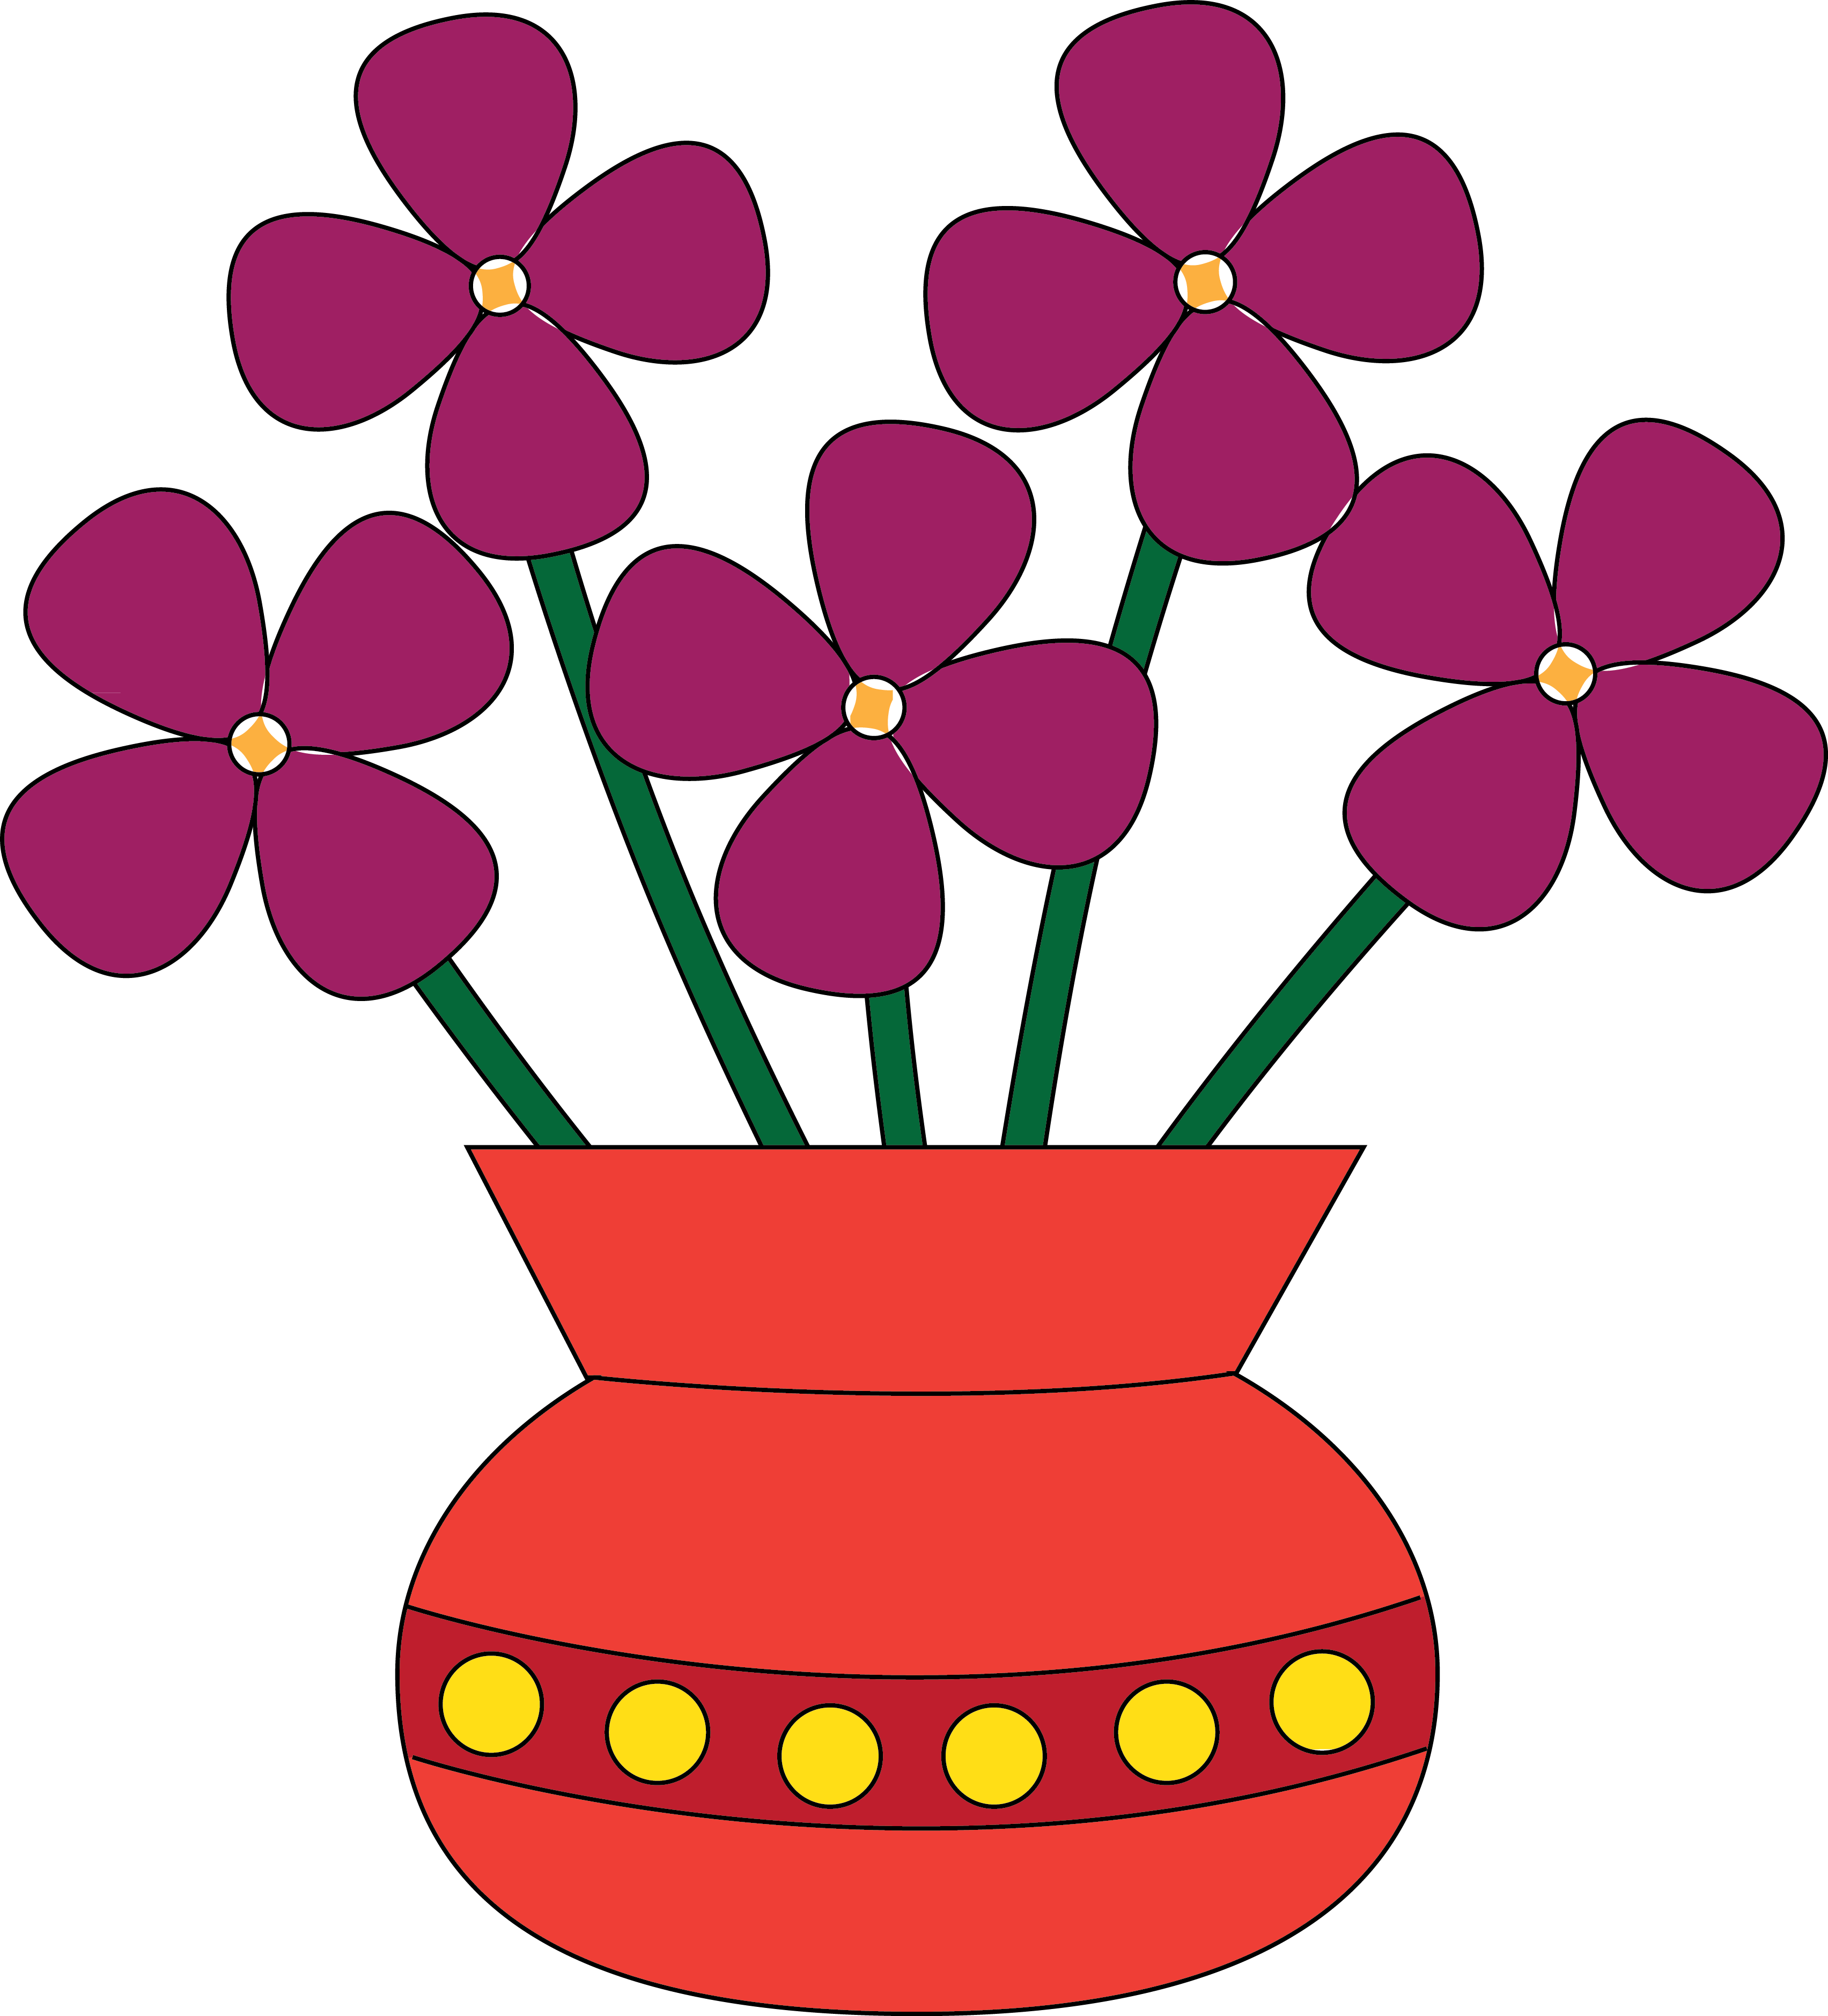 Vase clipart #16, Download drawings